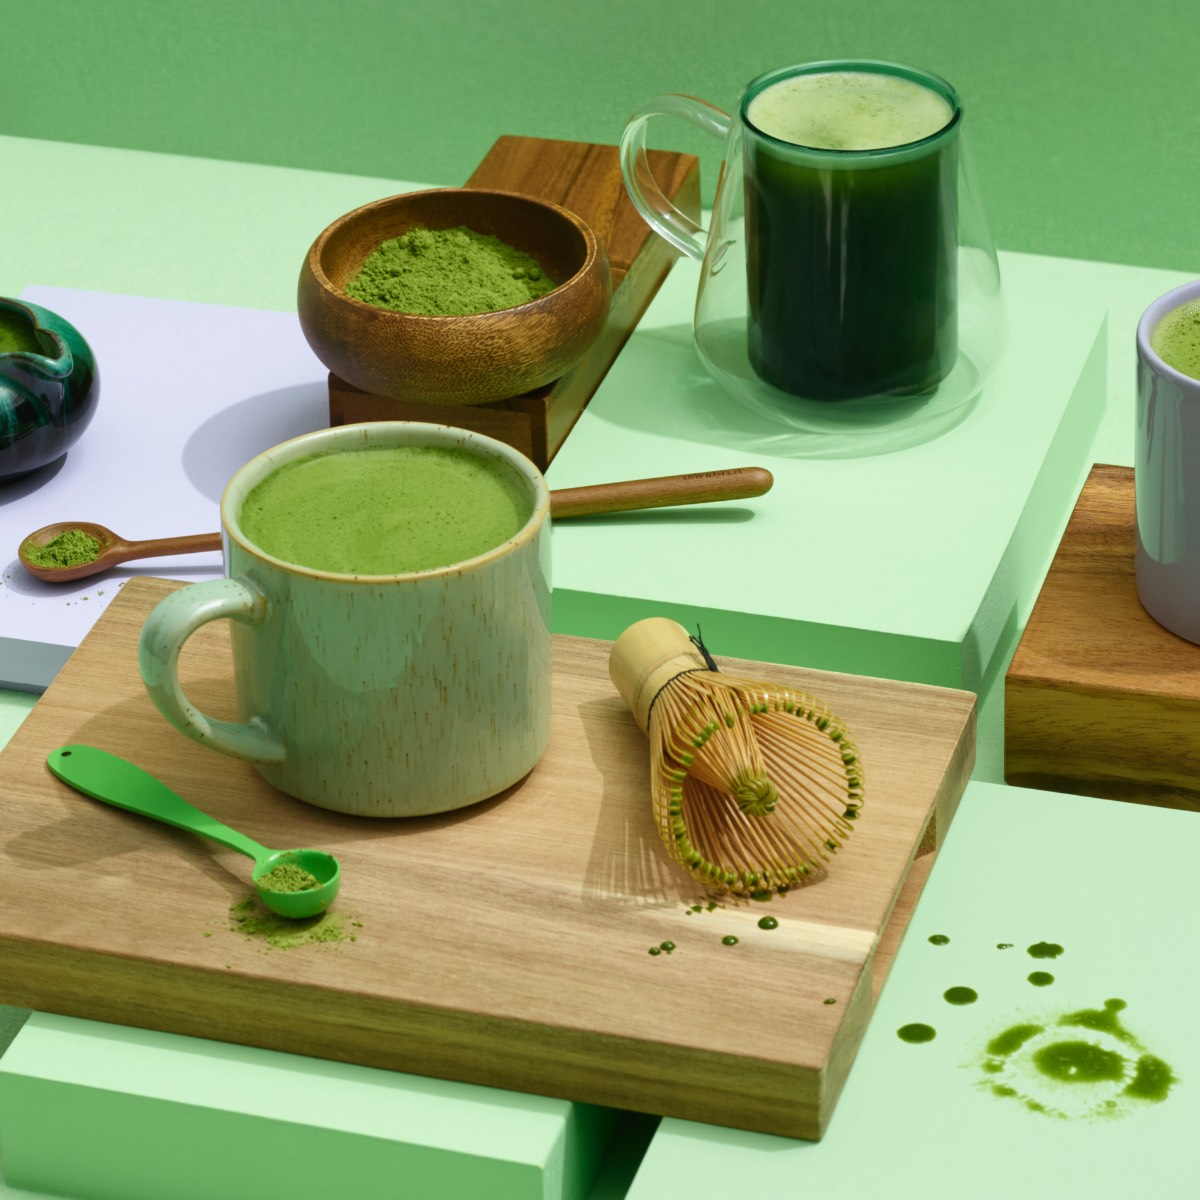 Various mugs filled with matcha and matcha powder on a gree backdrop.